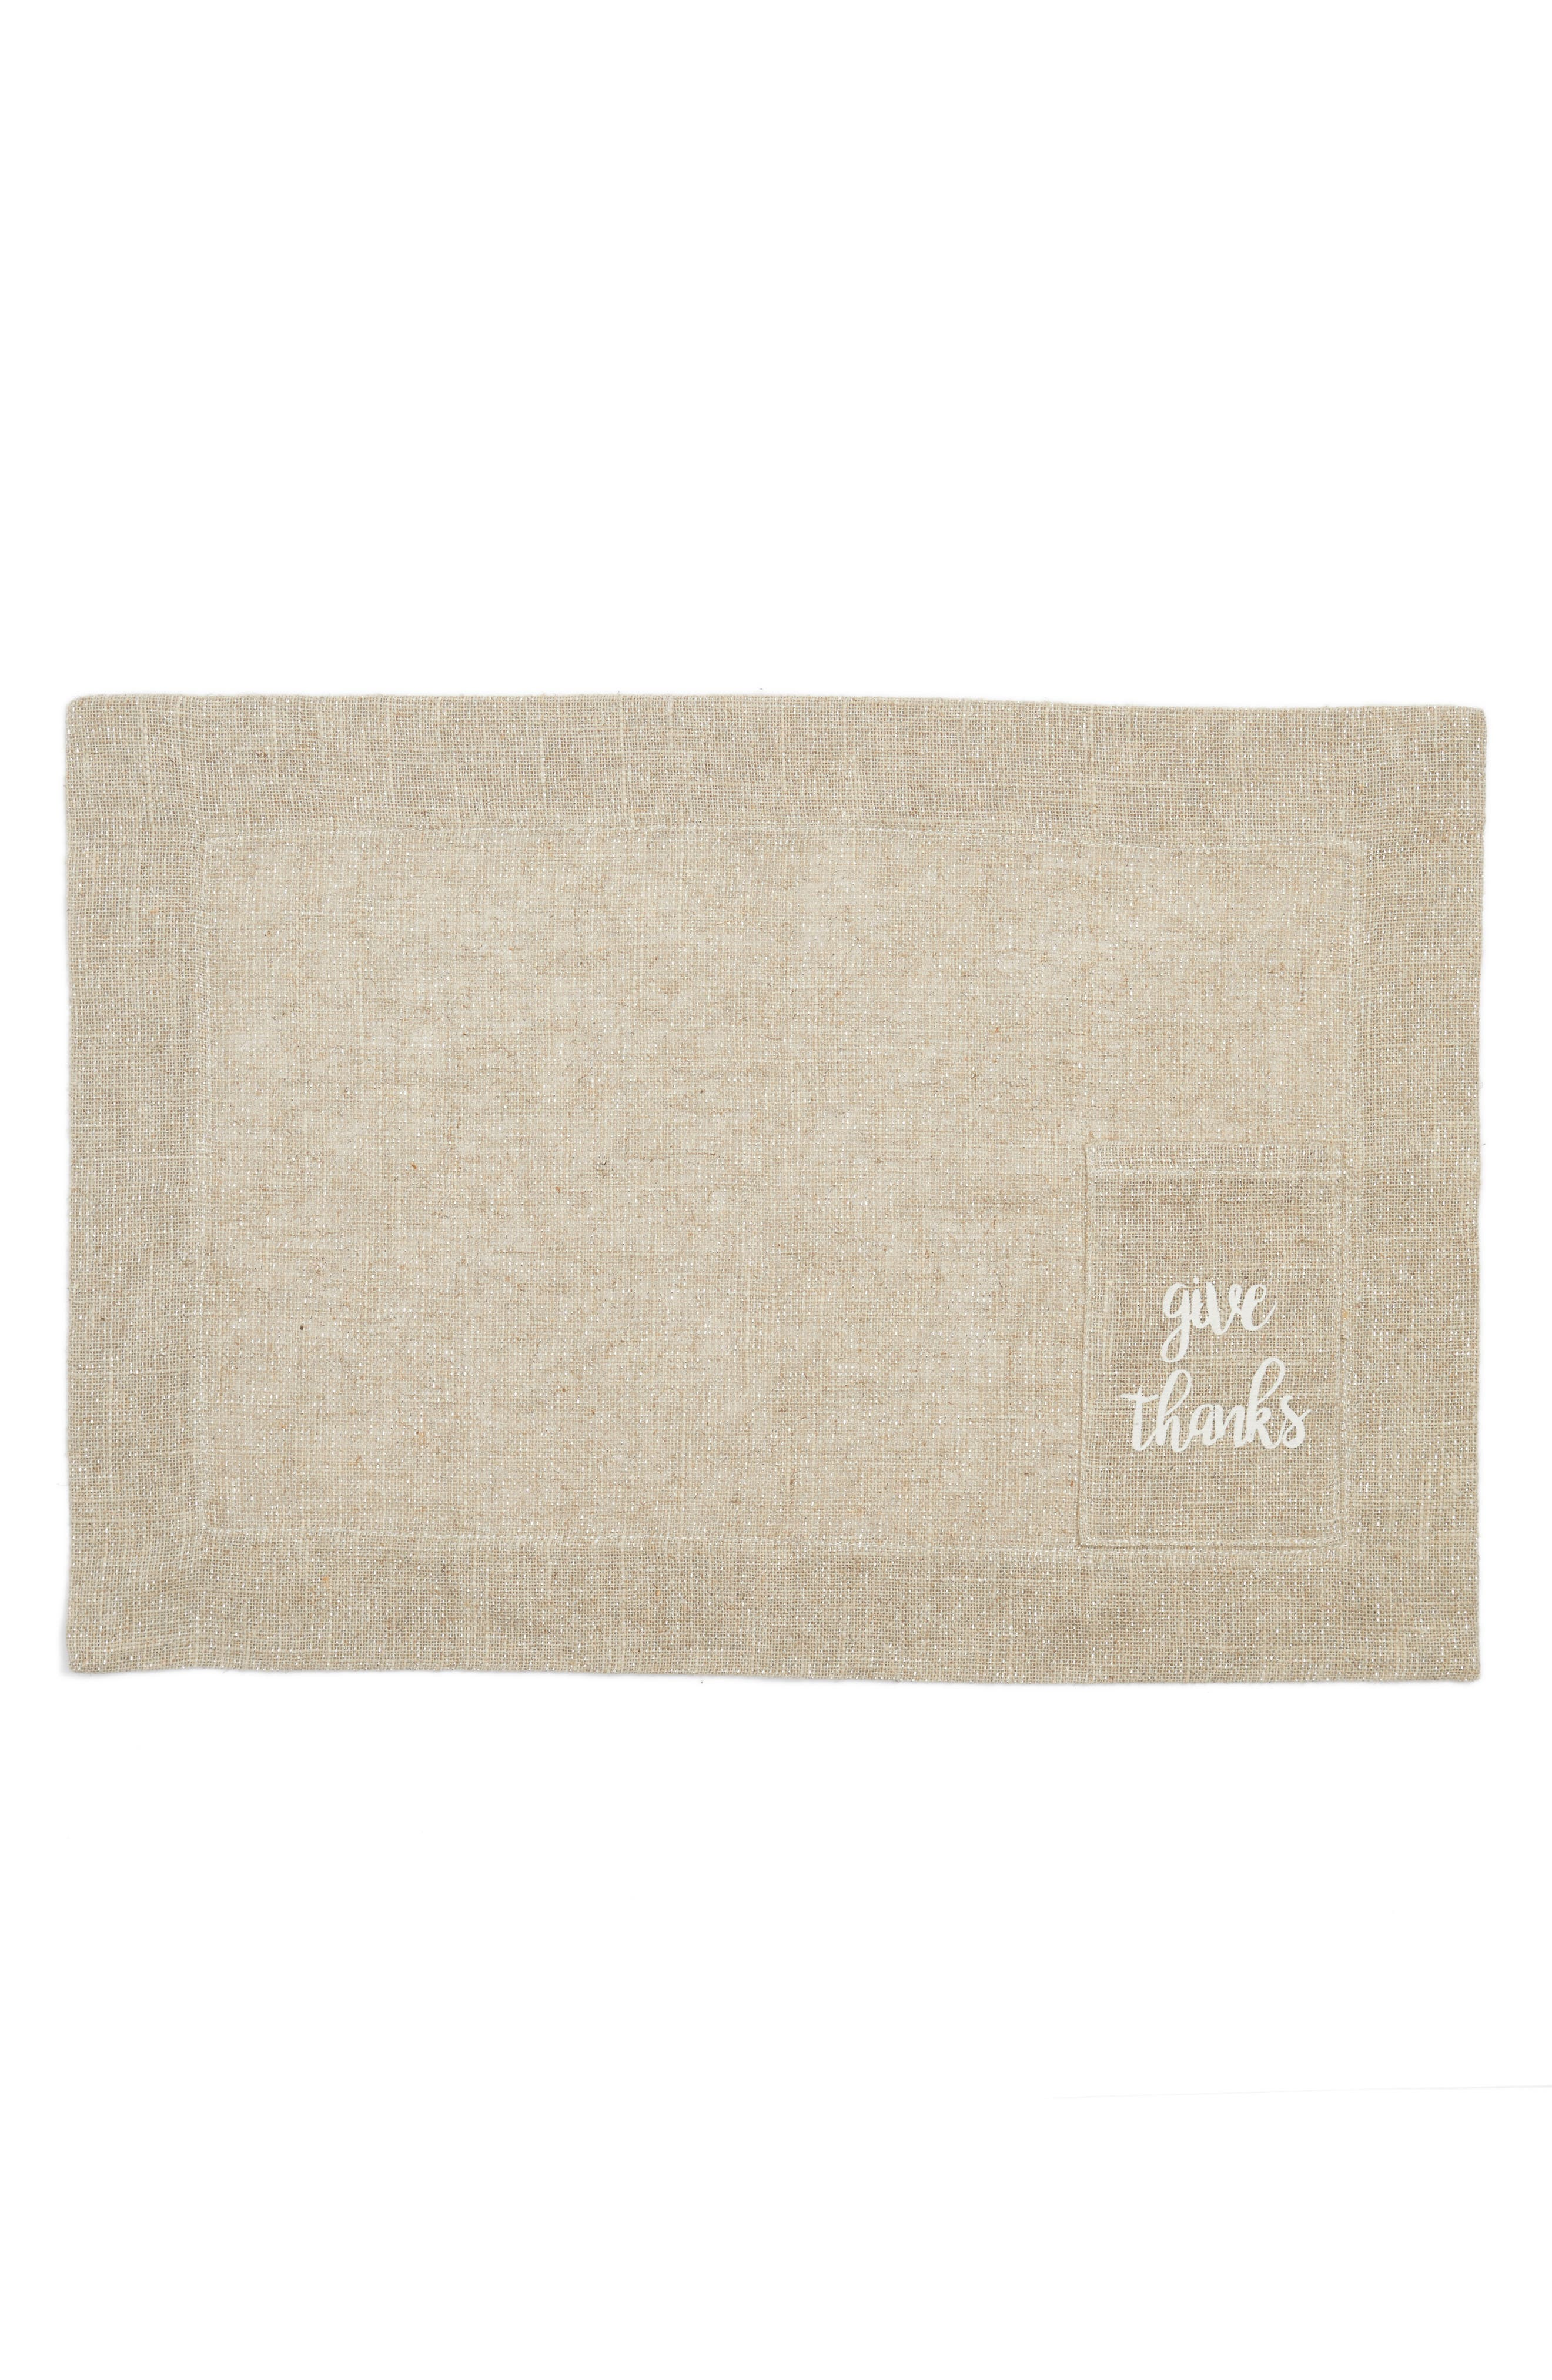 Levtex Give Thanks Placemat